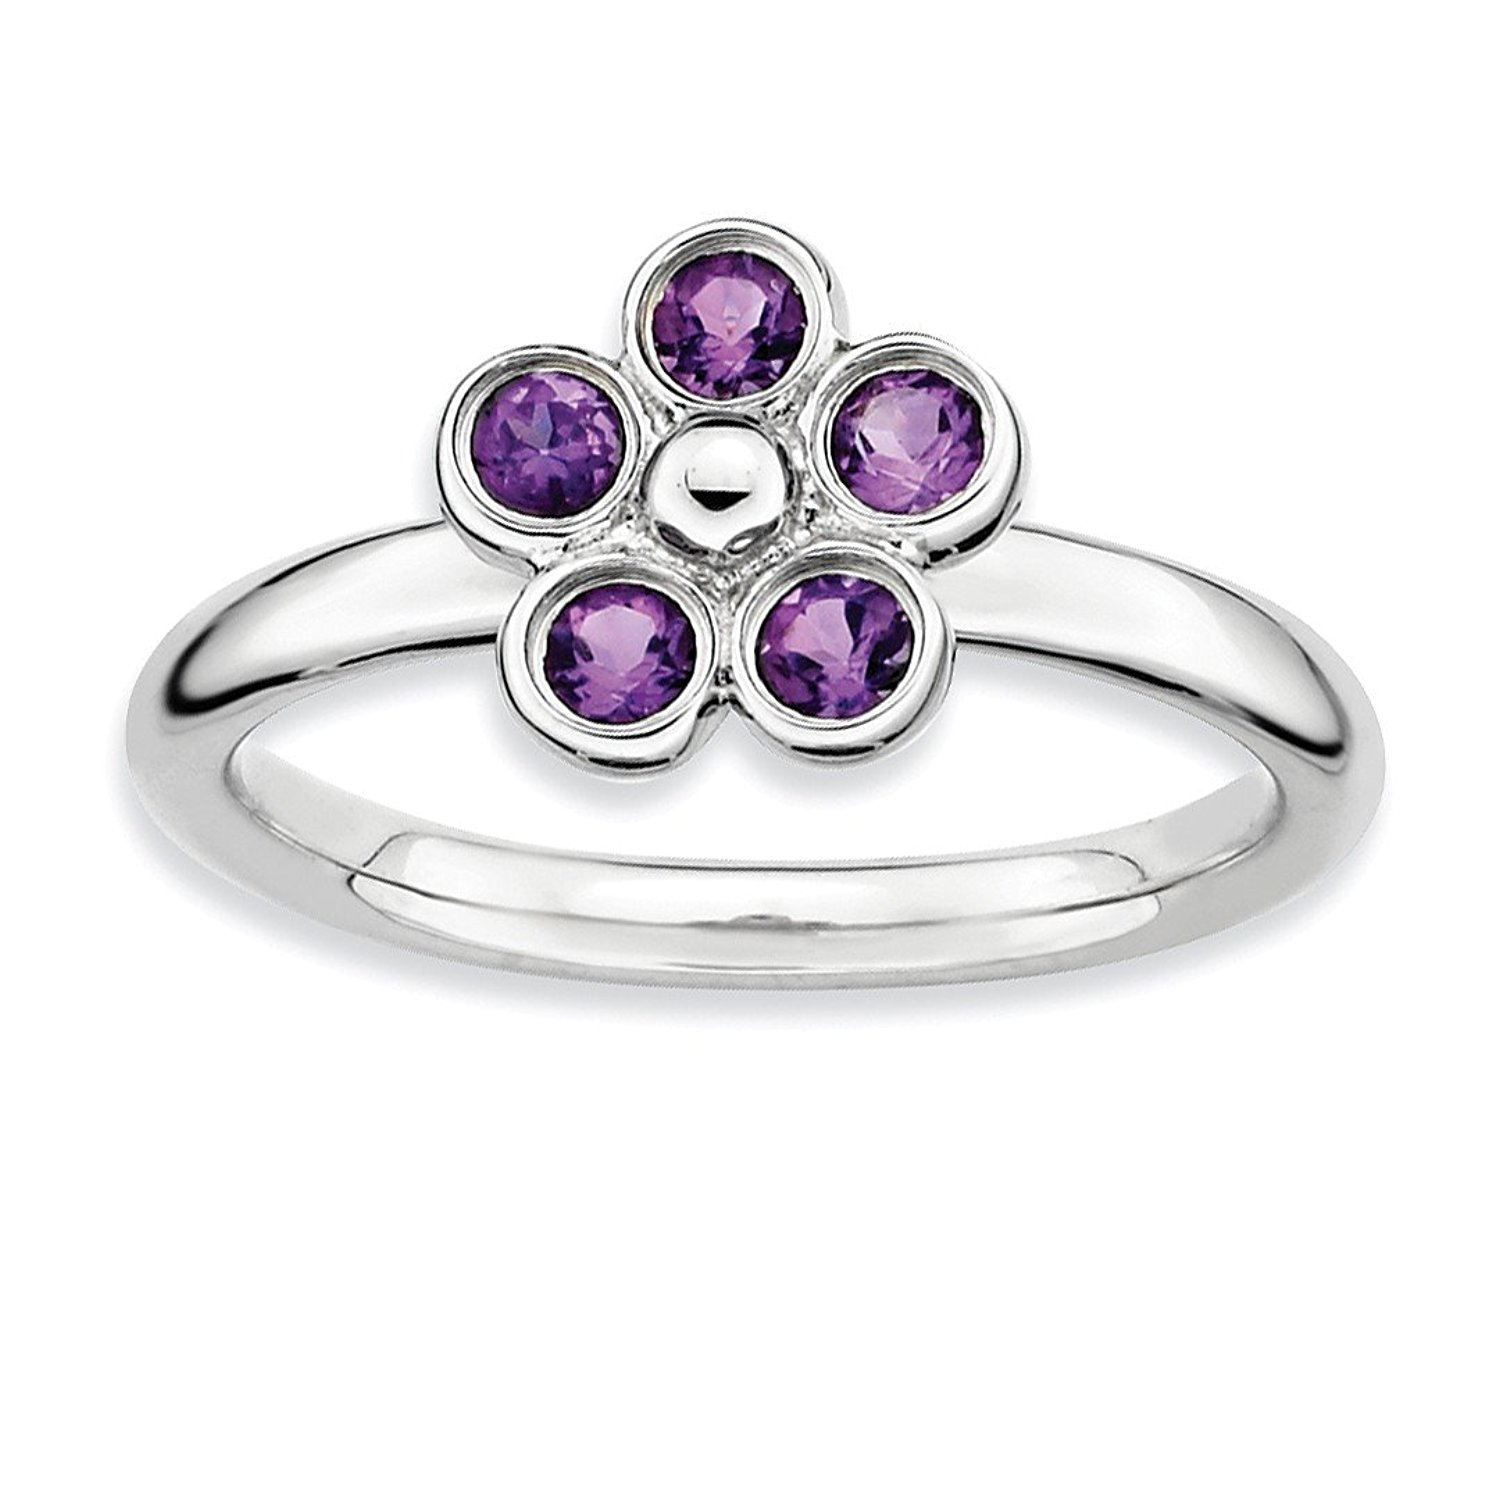 Boys 925 Sterling Silver High 4mm Round Rhodolite Red Garnet Band Ring Size 10.00 Stone Stackable Gemstone Birthstone June Fine Jewellery Gifts For Women For Her Rings